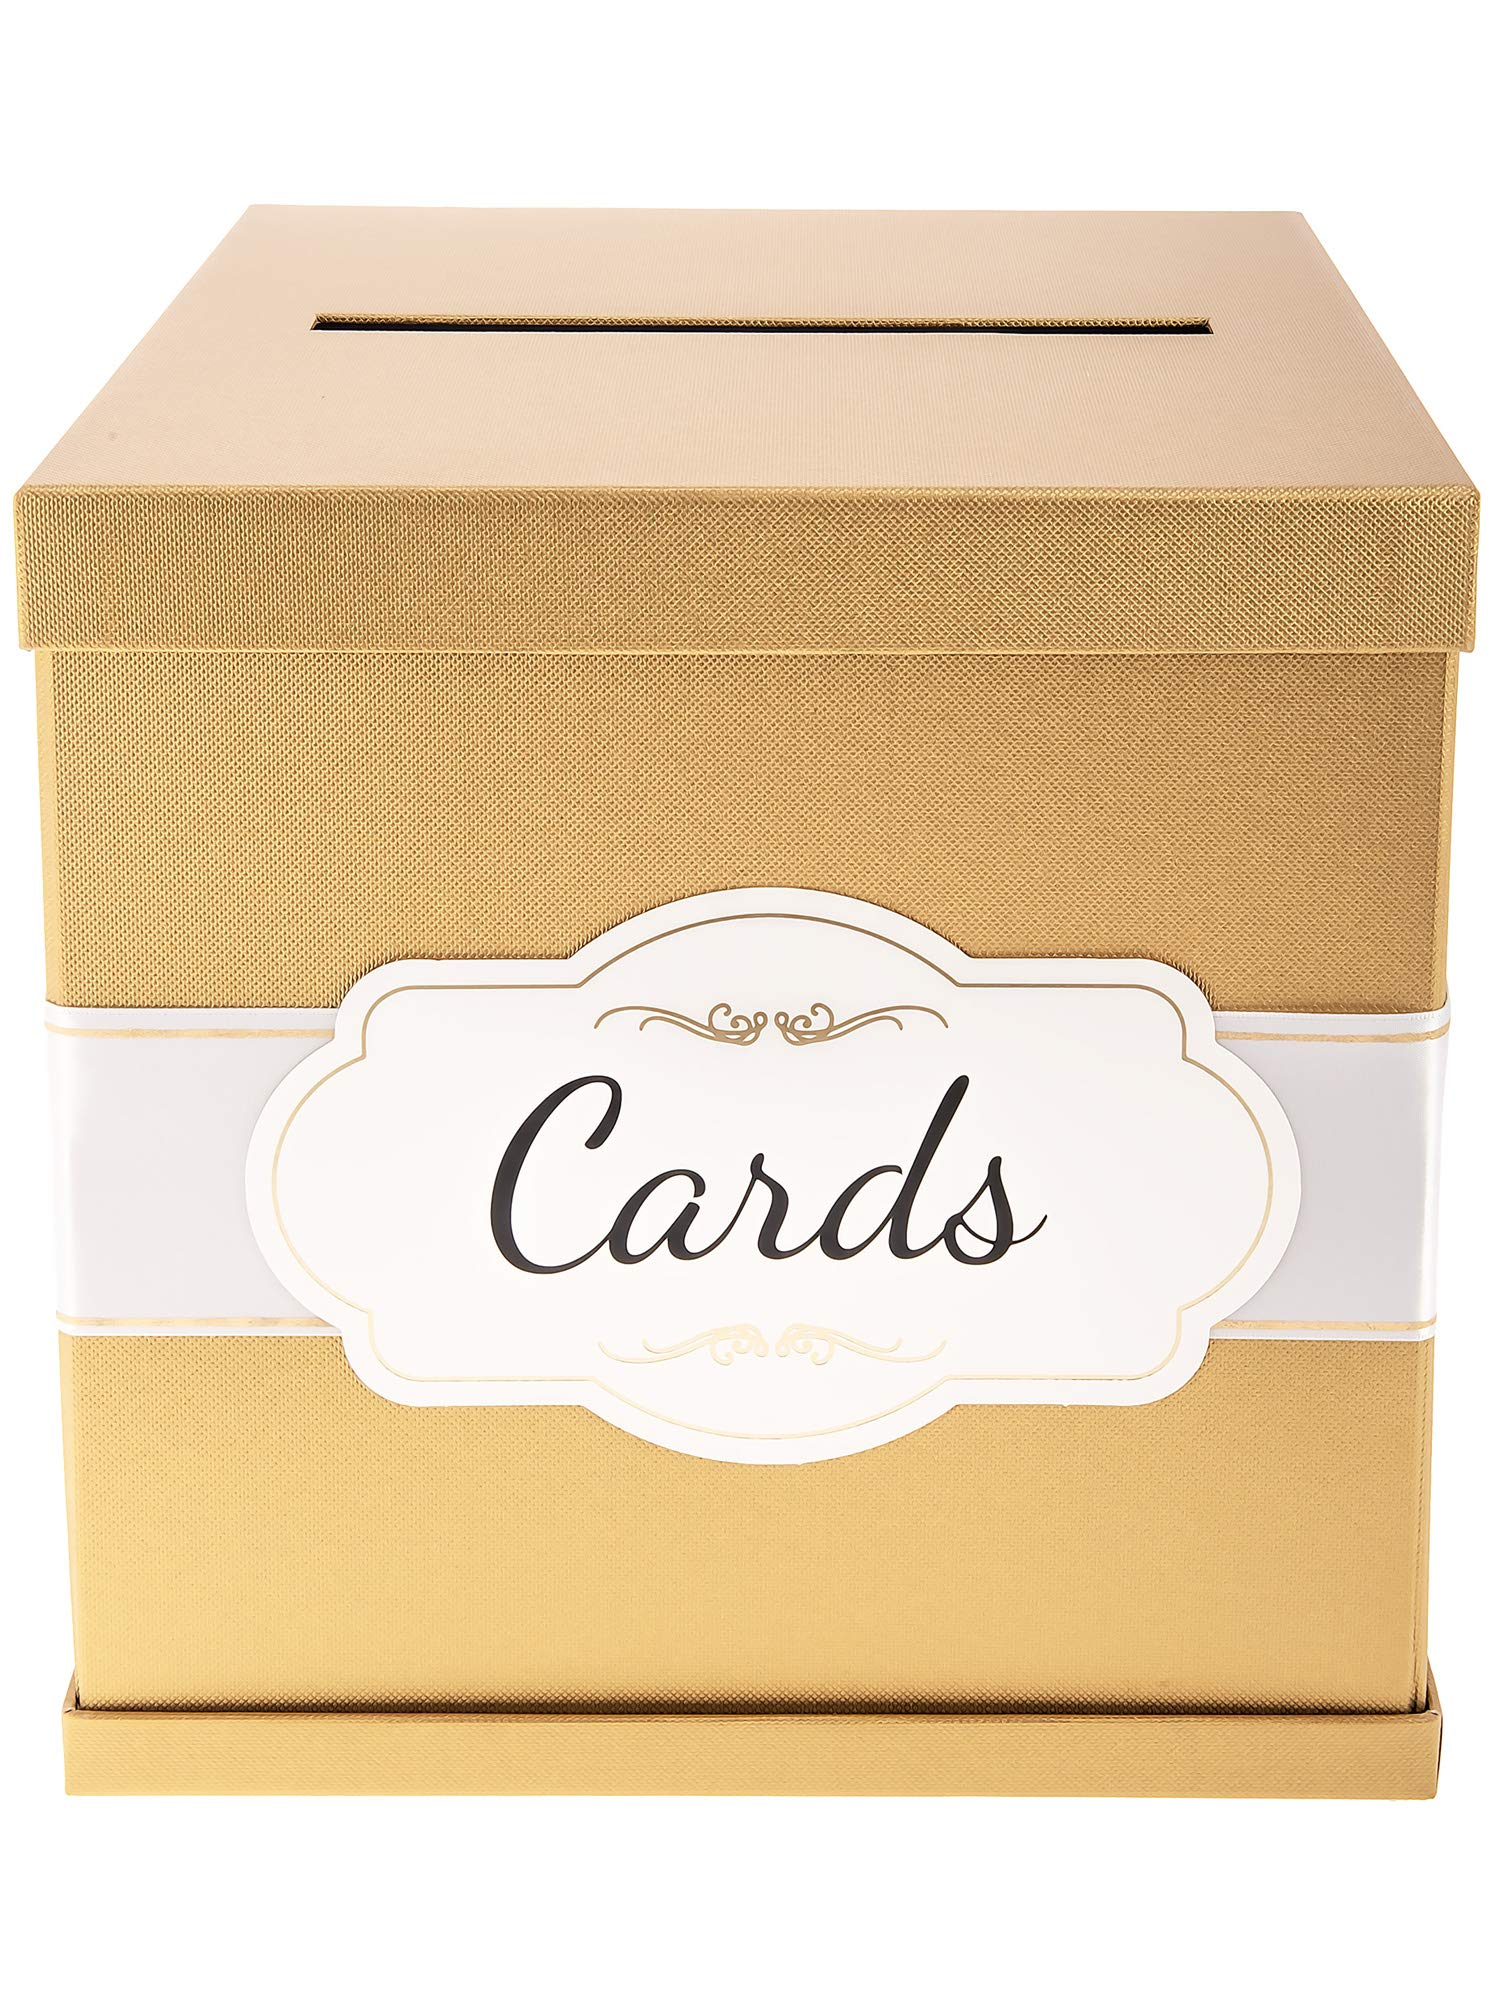 Merry Expressions Gold Gift Card Box with White/Gold-Foil Satin Ribbon & Cards Label - 10''x10'' Large Textured Finish, Perfect for Wedding Receptions, Birthdays, Graduations, Bridal & Baby Showers